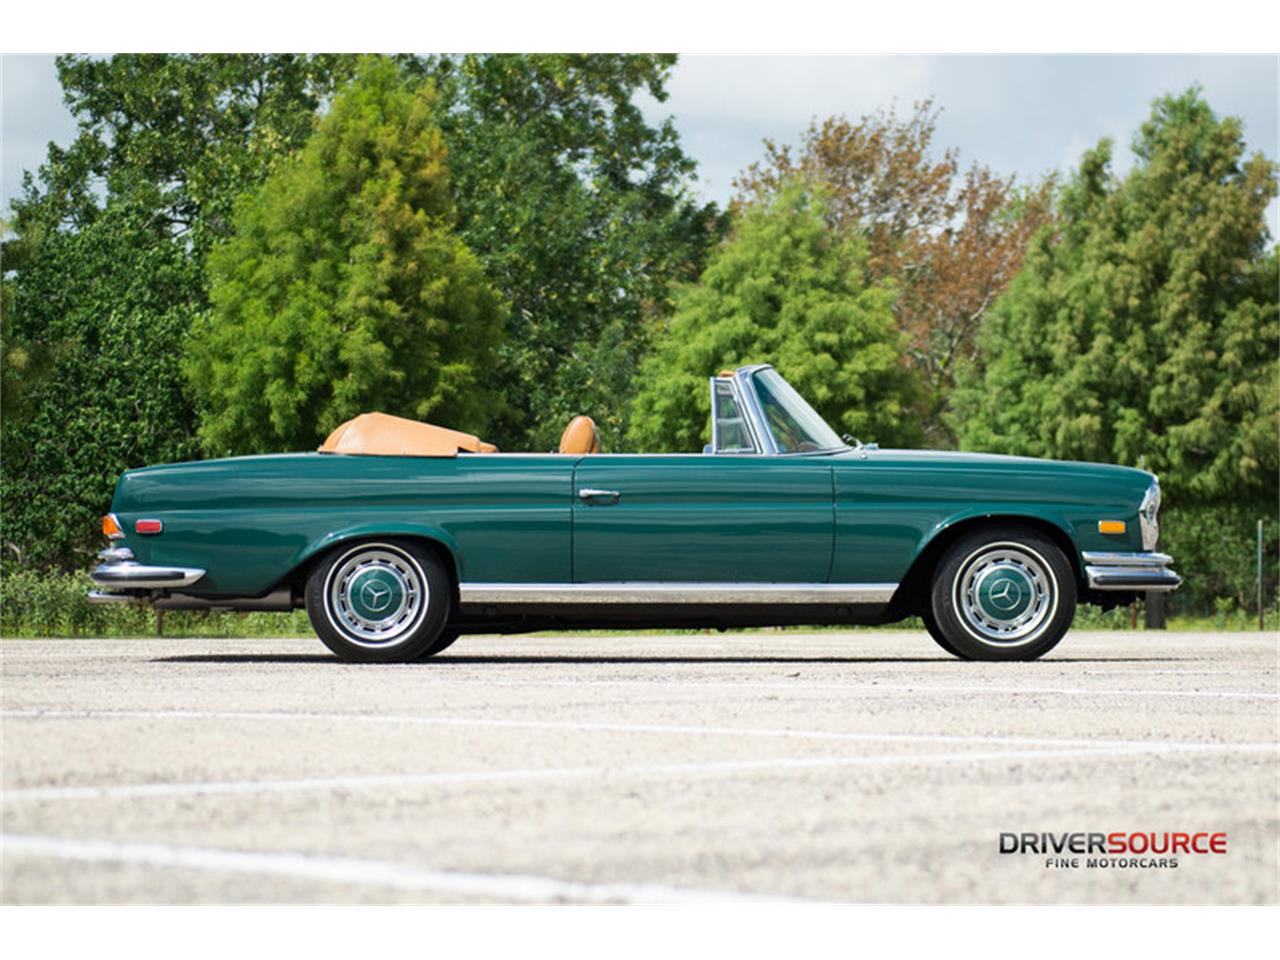 Large Picture of '71 Mercedes-Benz 280SE - $395,000.00 Offered by Driversource - LAC0